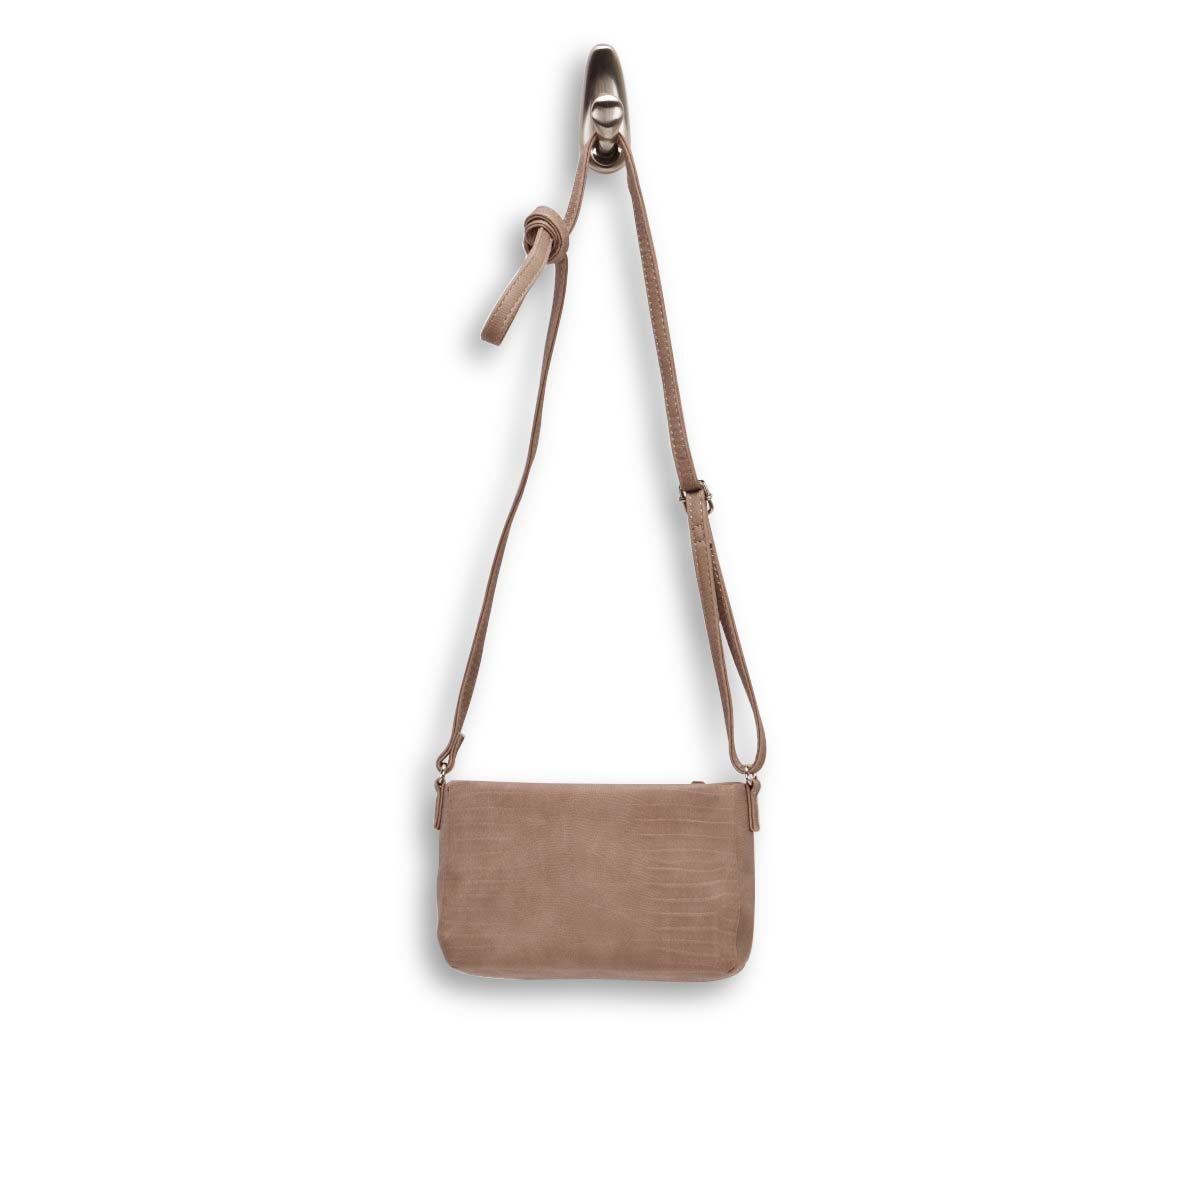 Lds Micro Sleek mushroom cross body